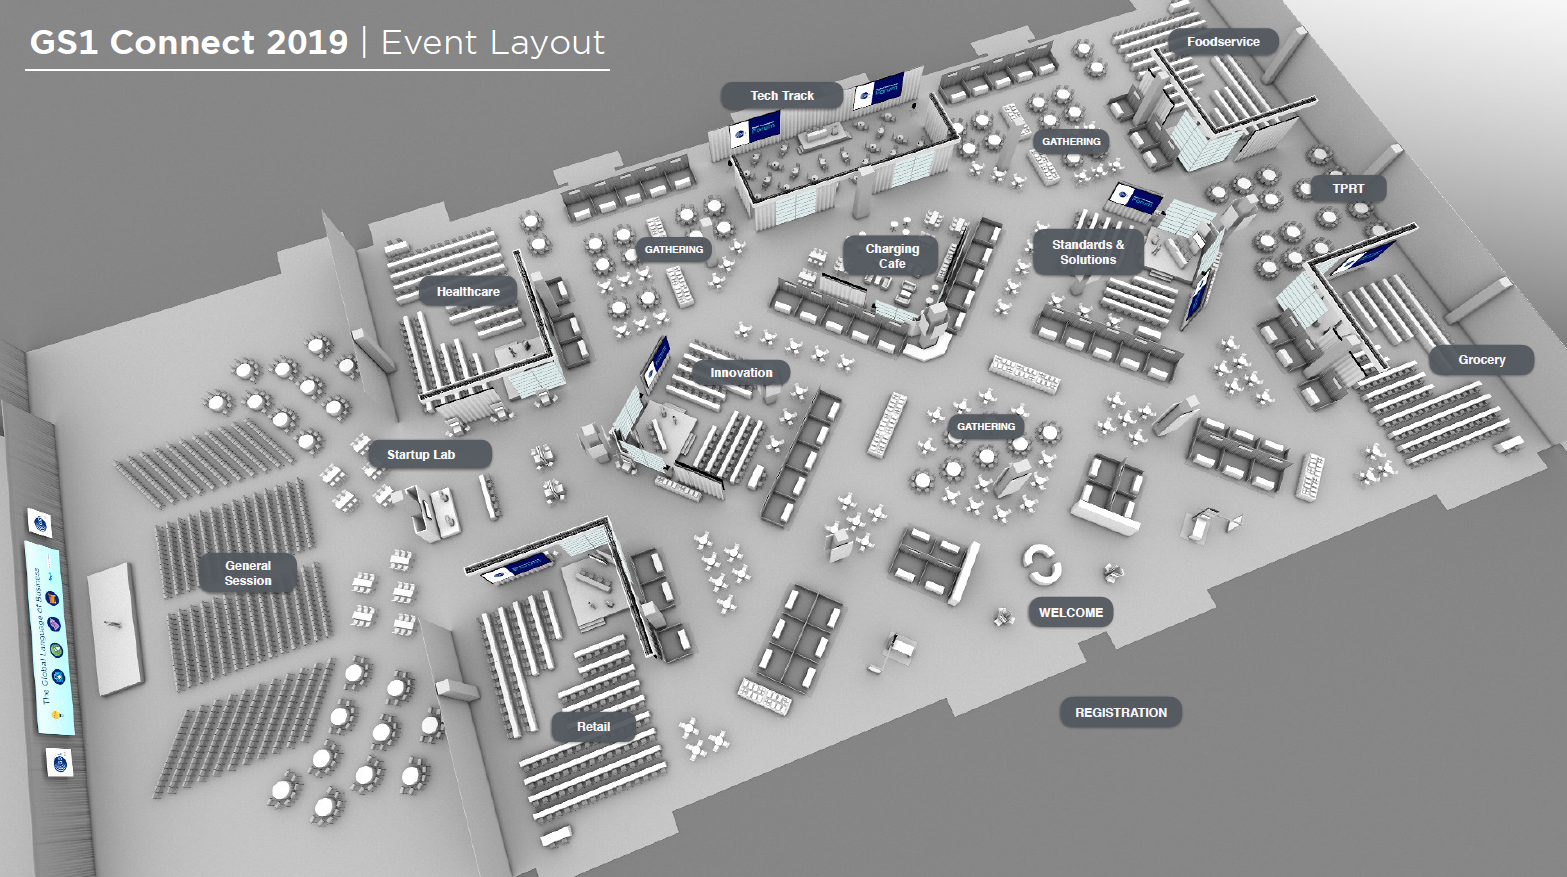 GS1 Connect 2019_Startup Lab_Event Layout